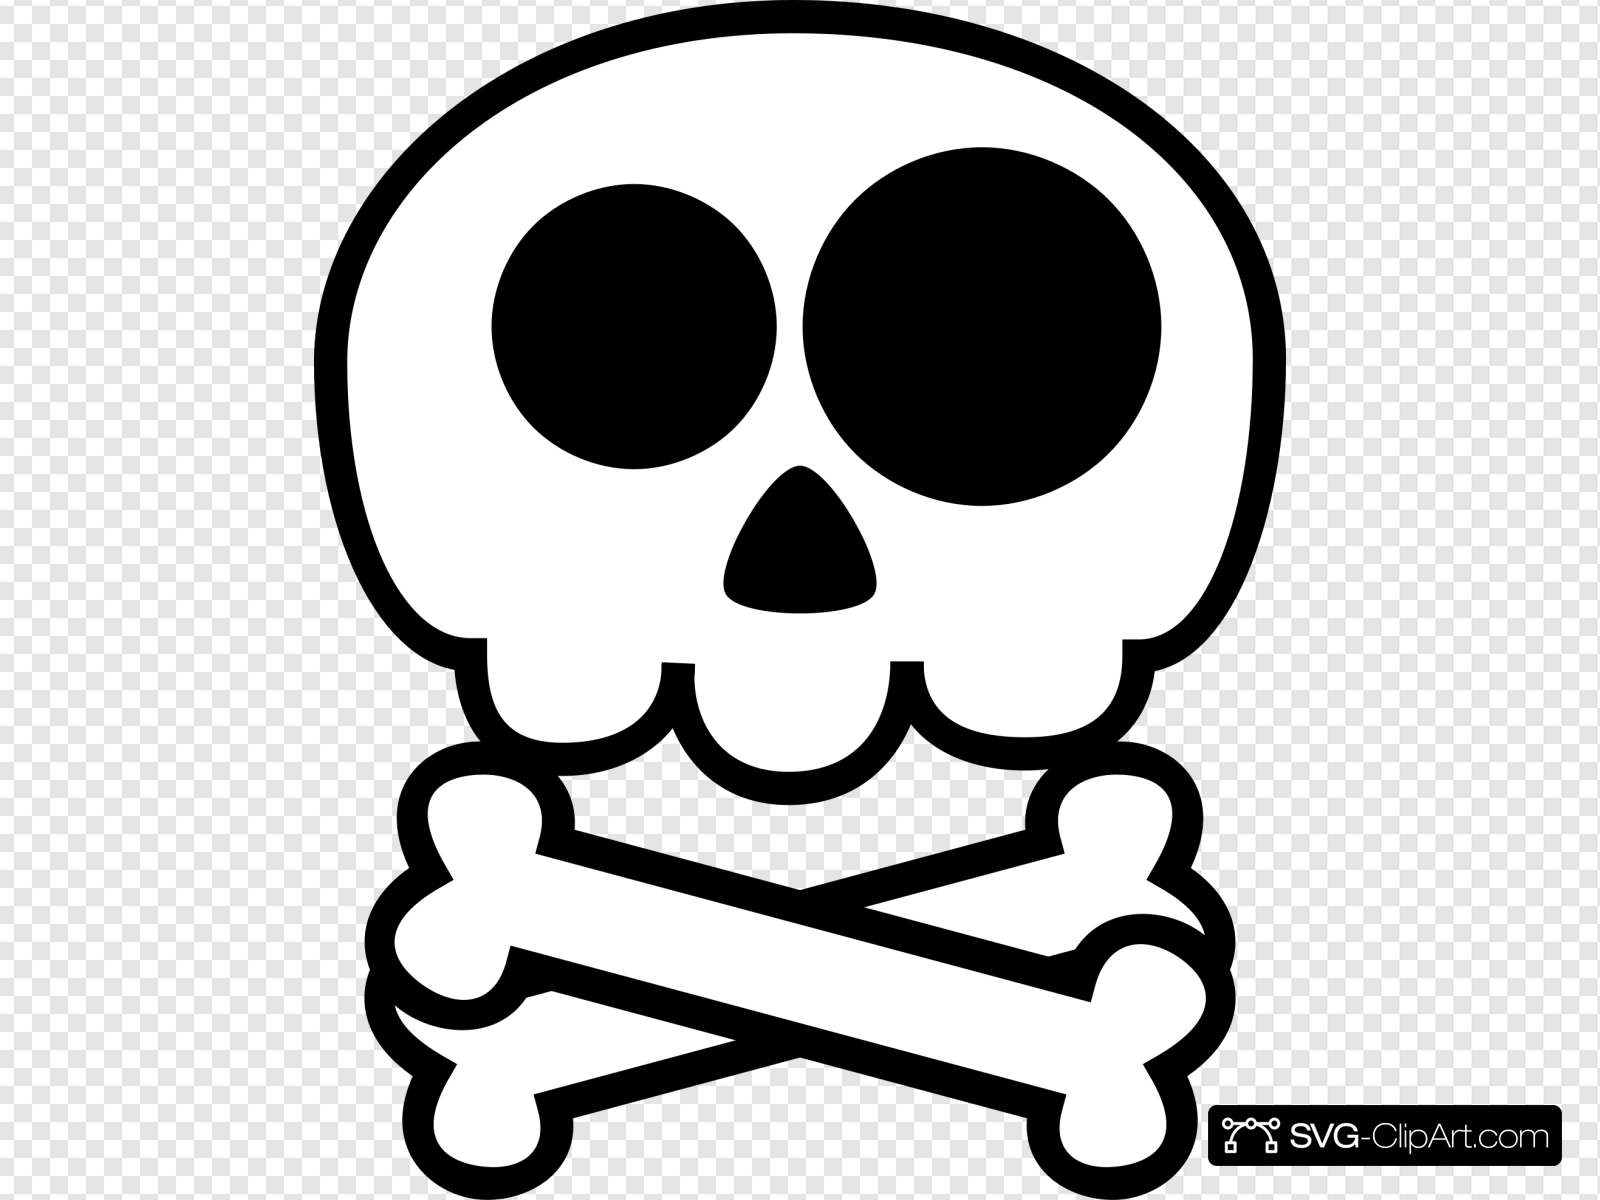 Cute Skull And Crossbones Clip art, Icon and SVG.